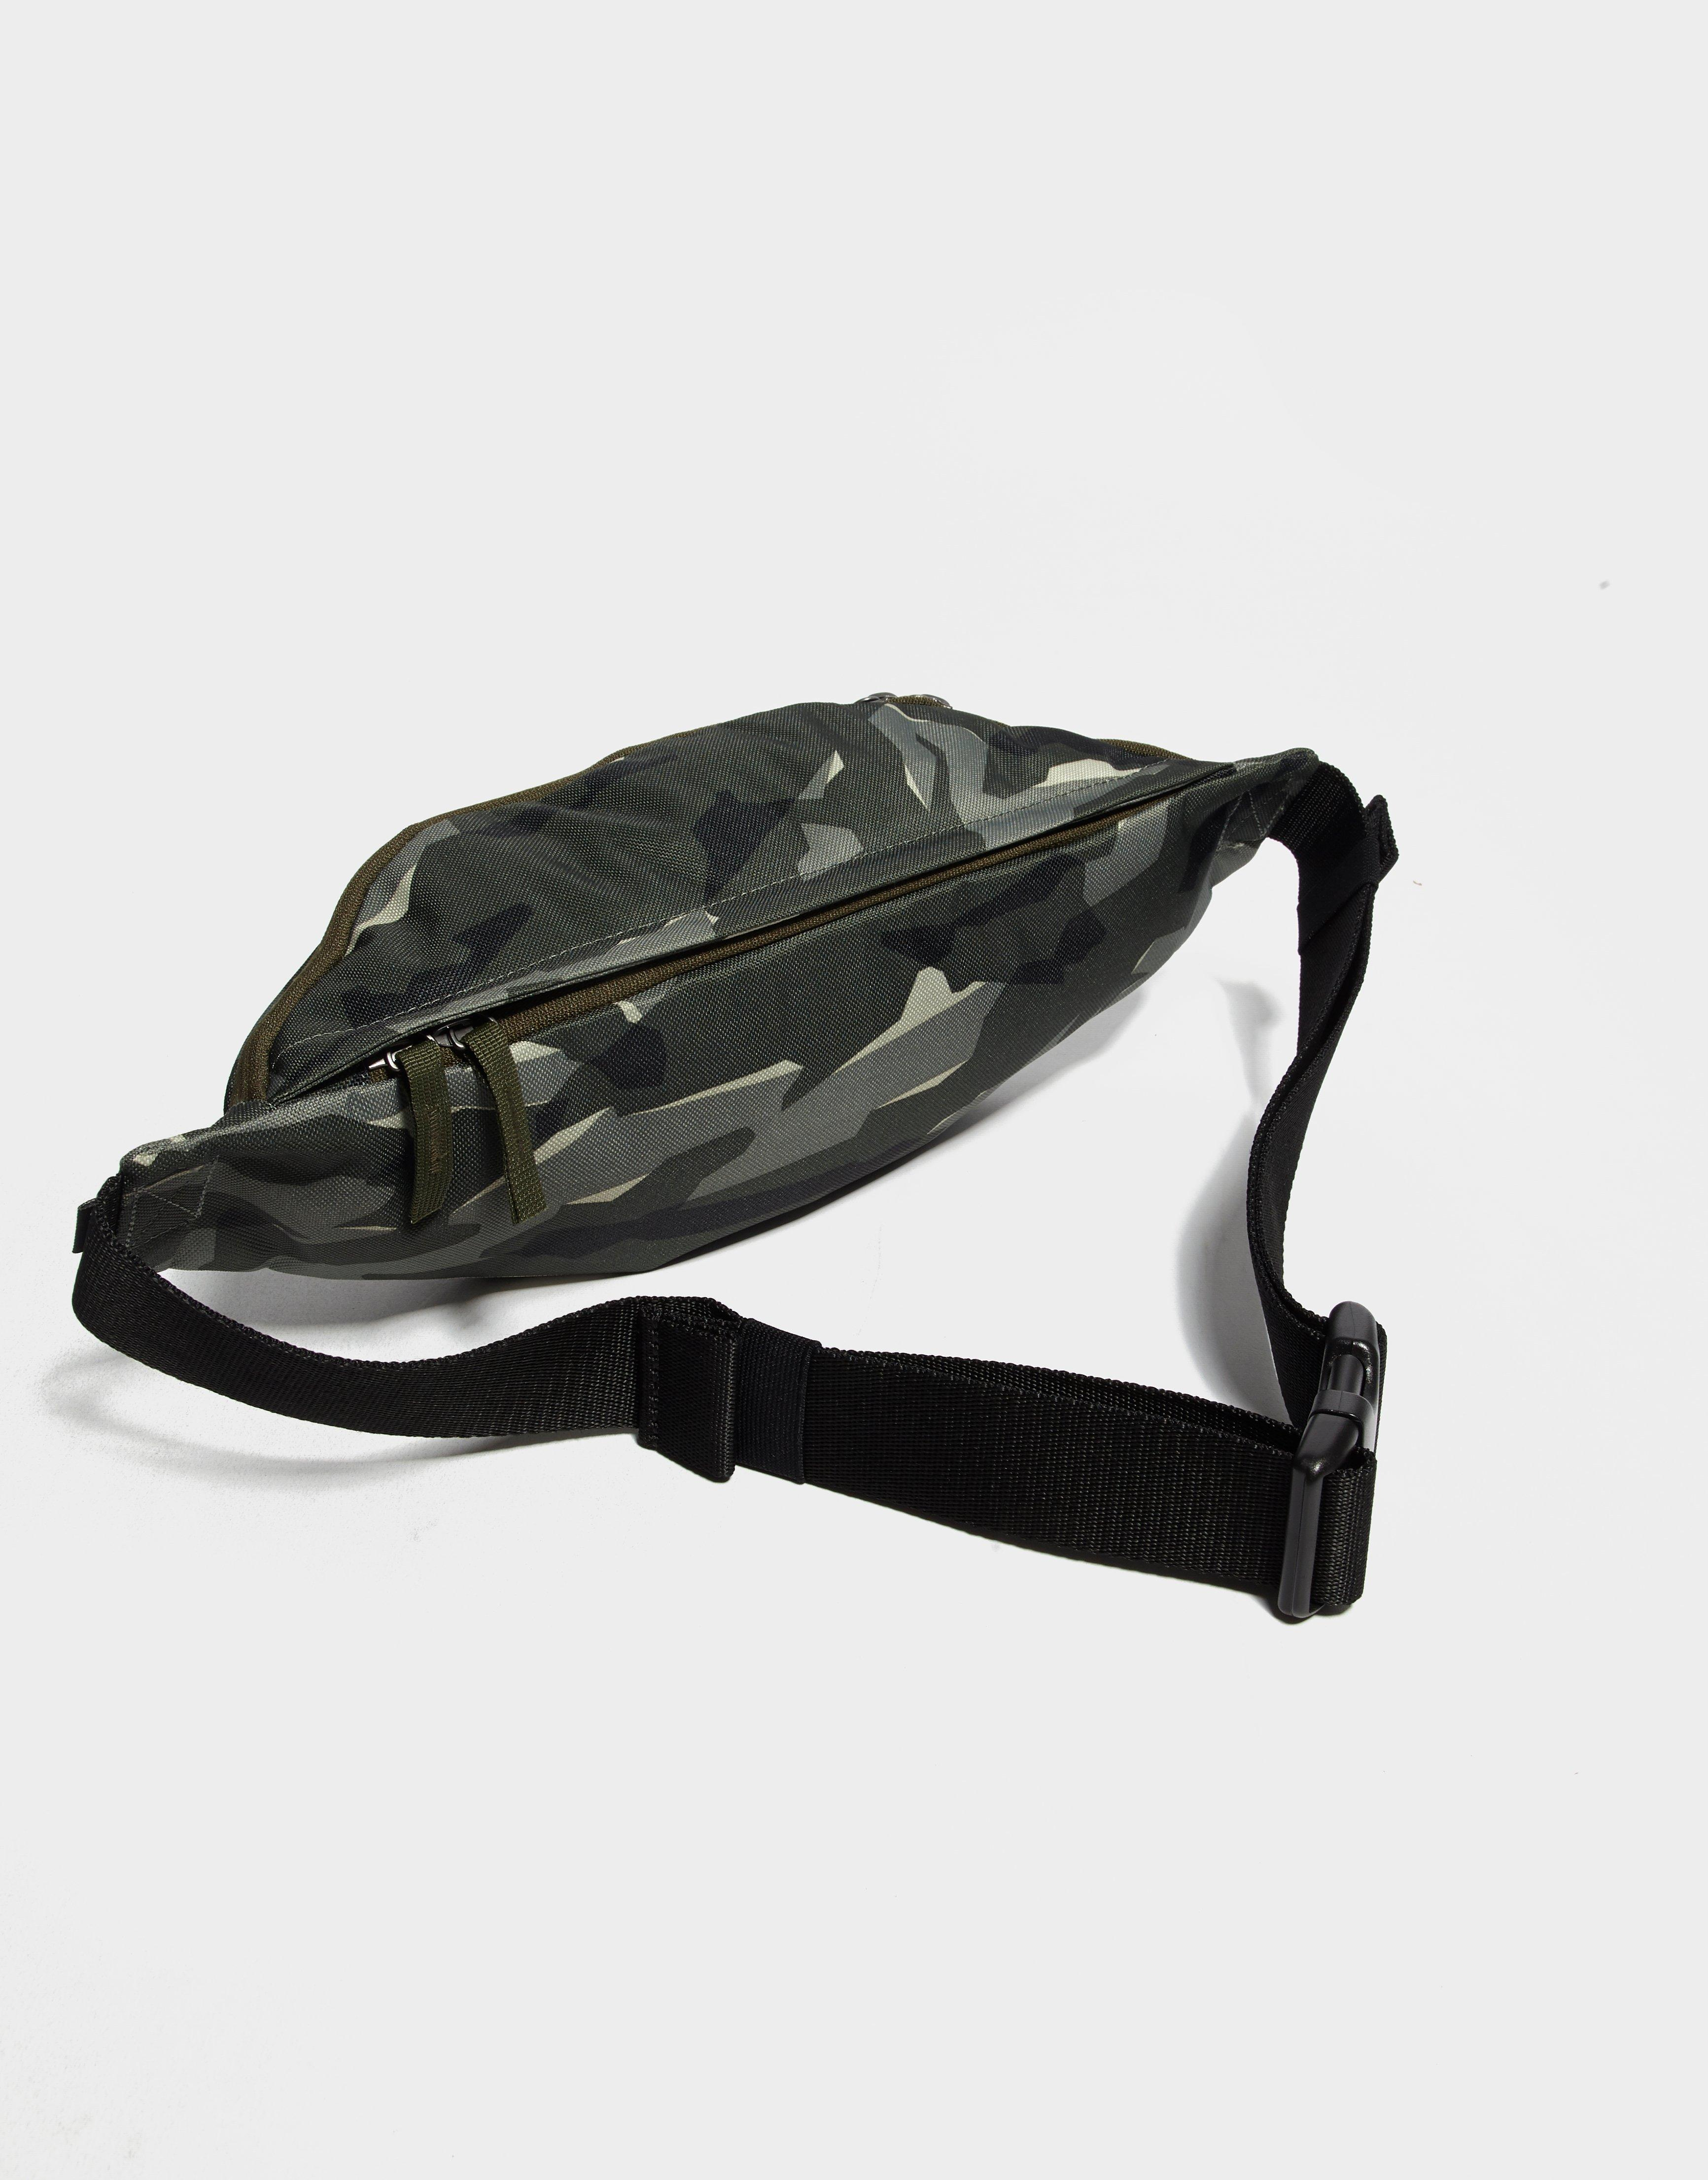 Lyst - Nike Camo Waist Bag in Green for Men 922cc62365057